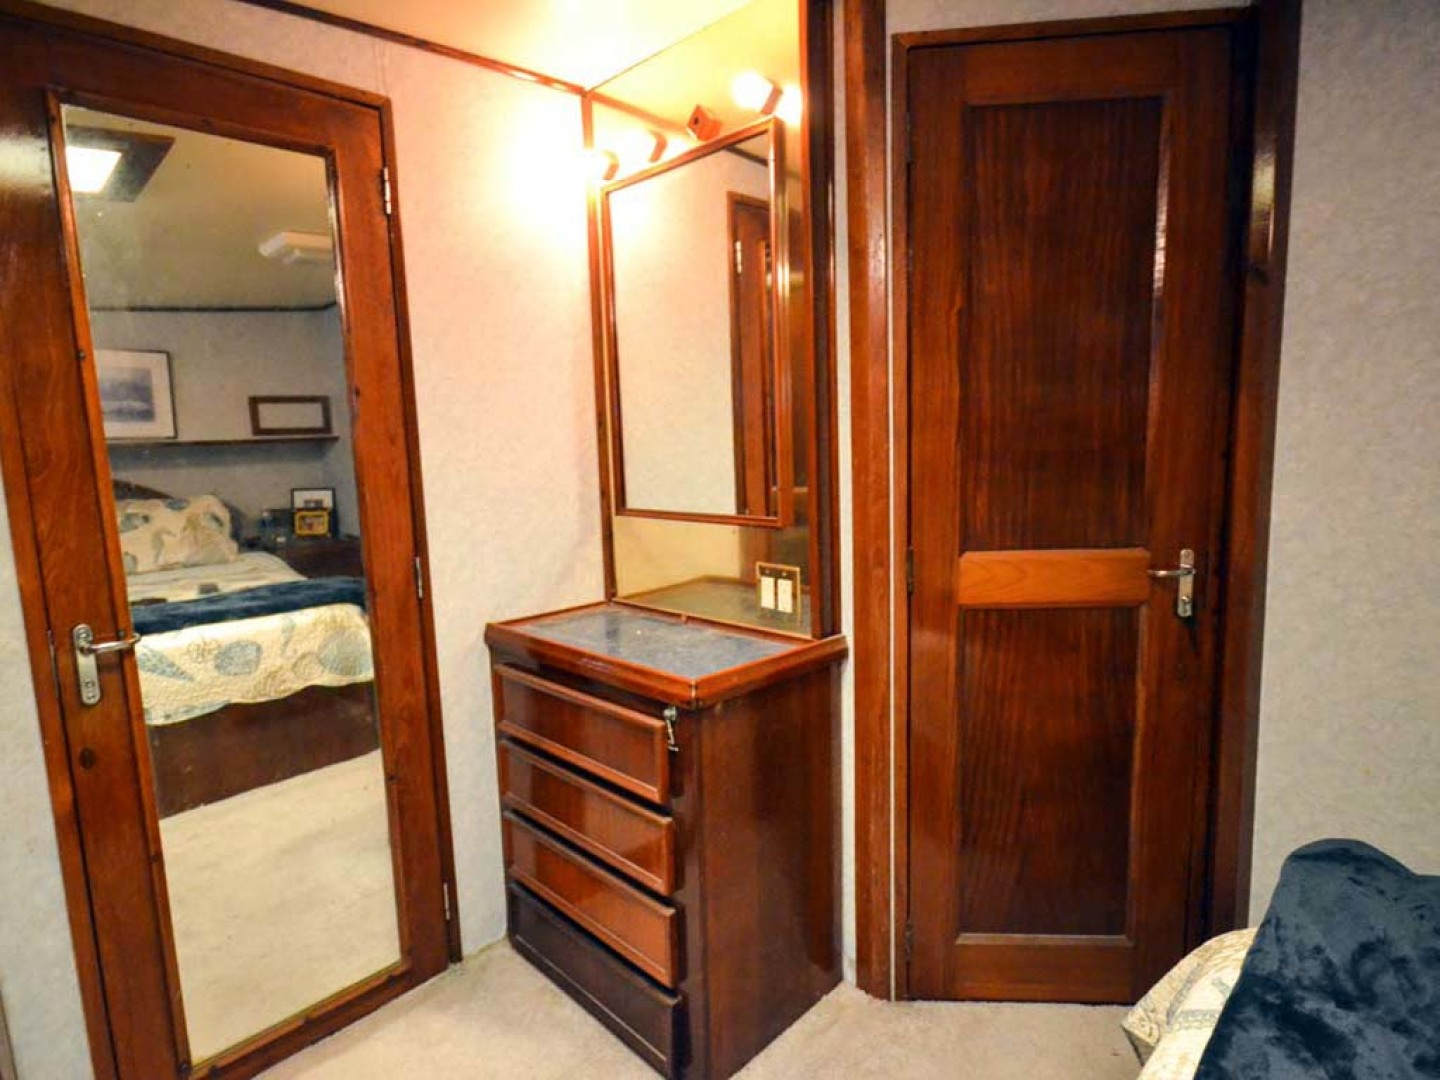 Hatteras-60 Flybridge 1979-Sea Horse Daytona Beach-Florida-United States-Master Closet and Vanity-1070362 | Thumbnail